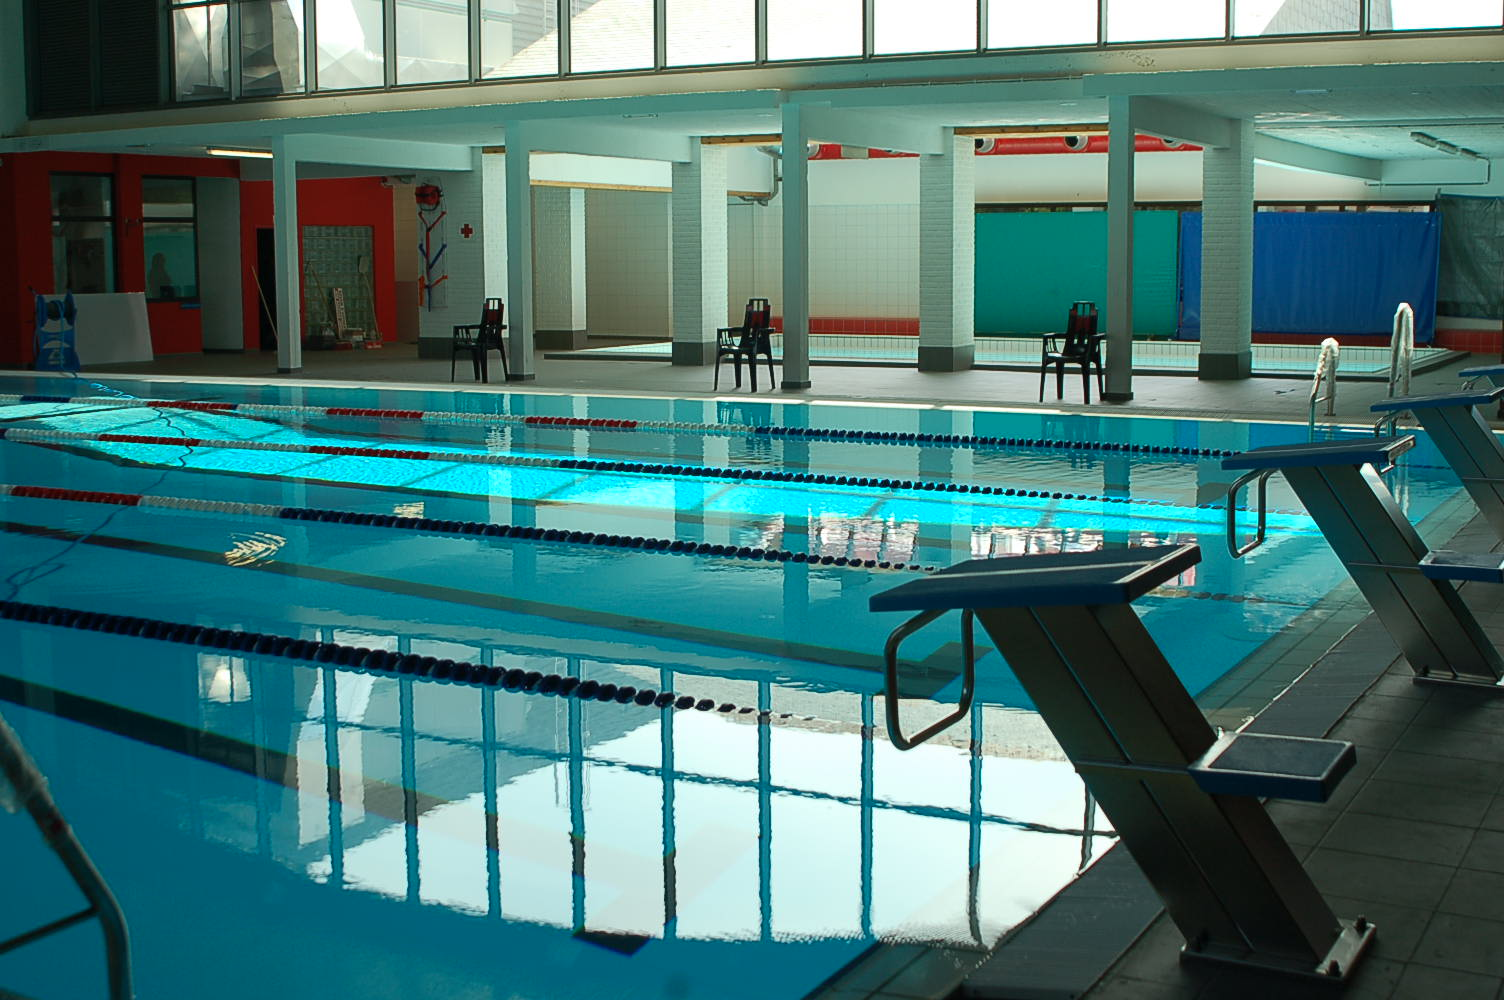 Piscine d 39 andenne horaire d 39 t ville d 39 andenne - Horaire piscine hyeres ...